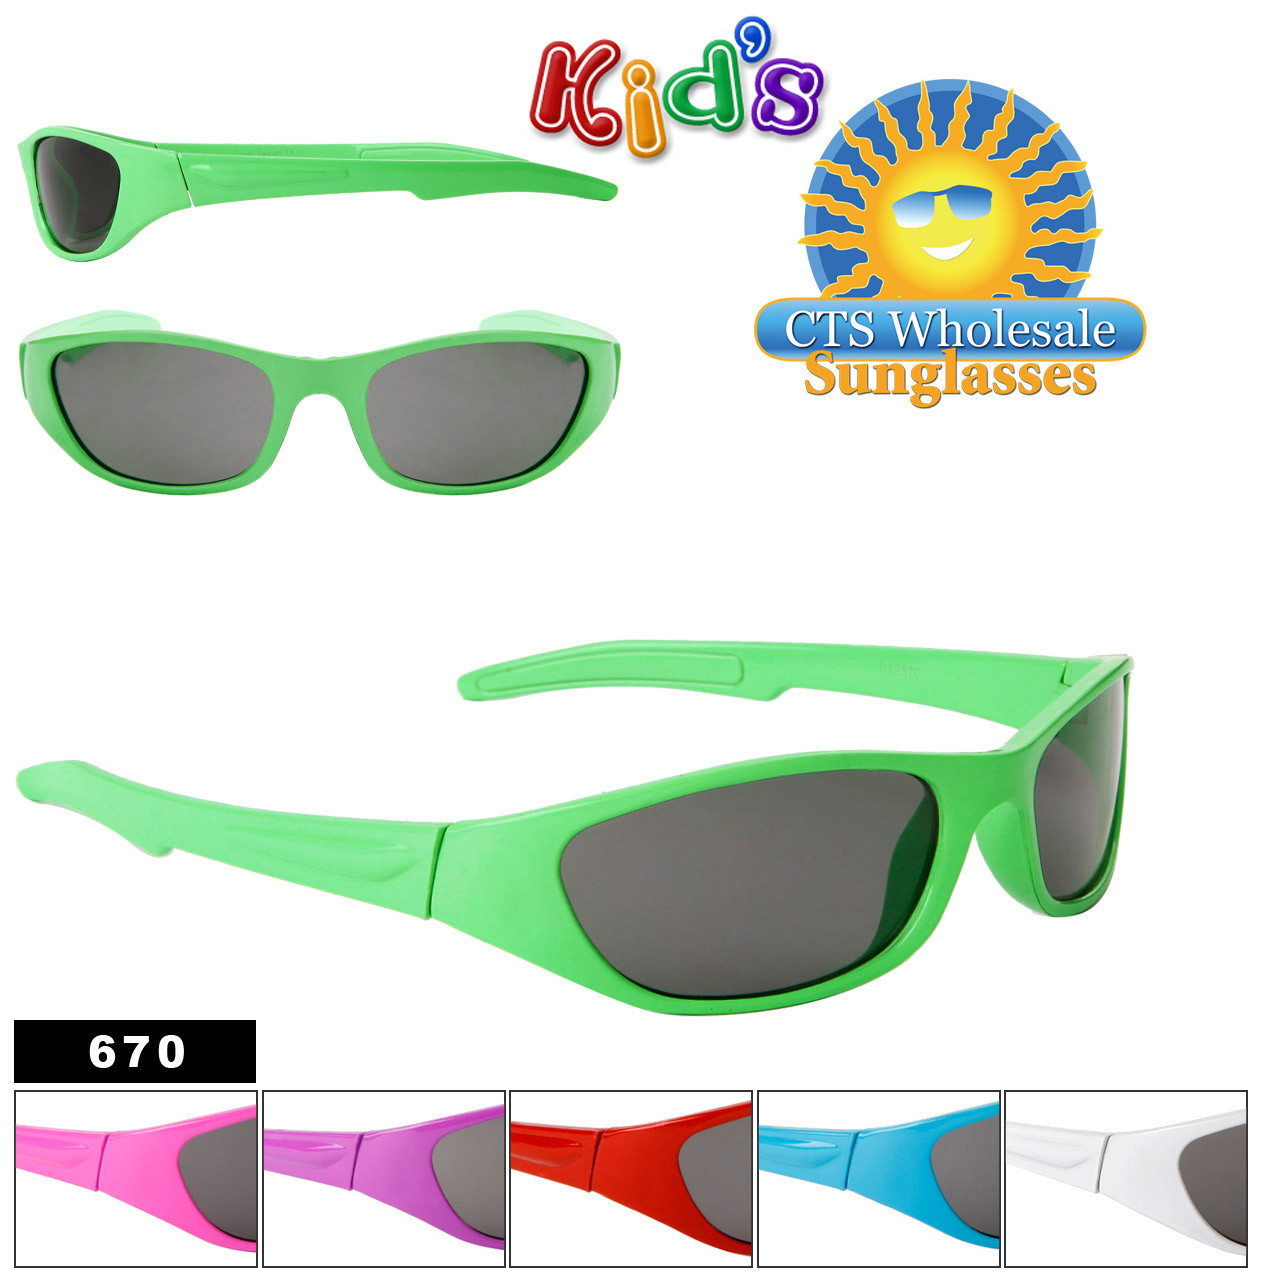 Kid's Sports Sunglasses Wholesale 670